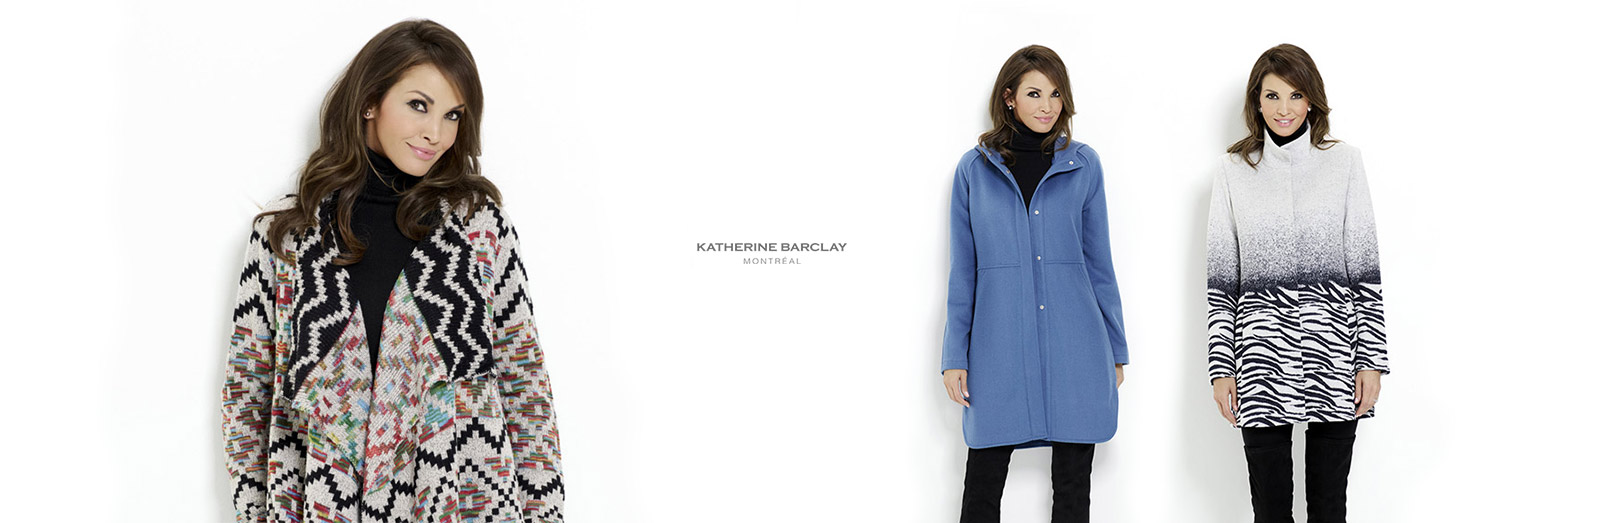 Katherine Barclay Collection